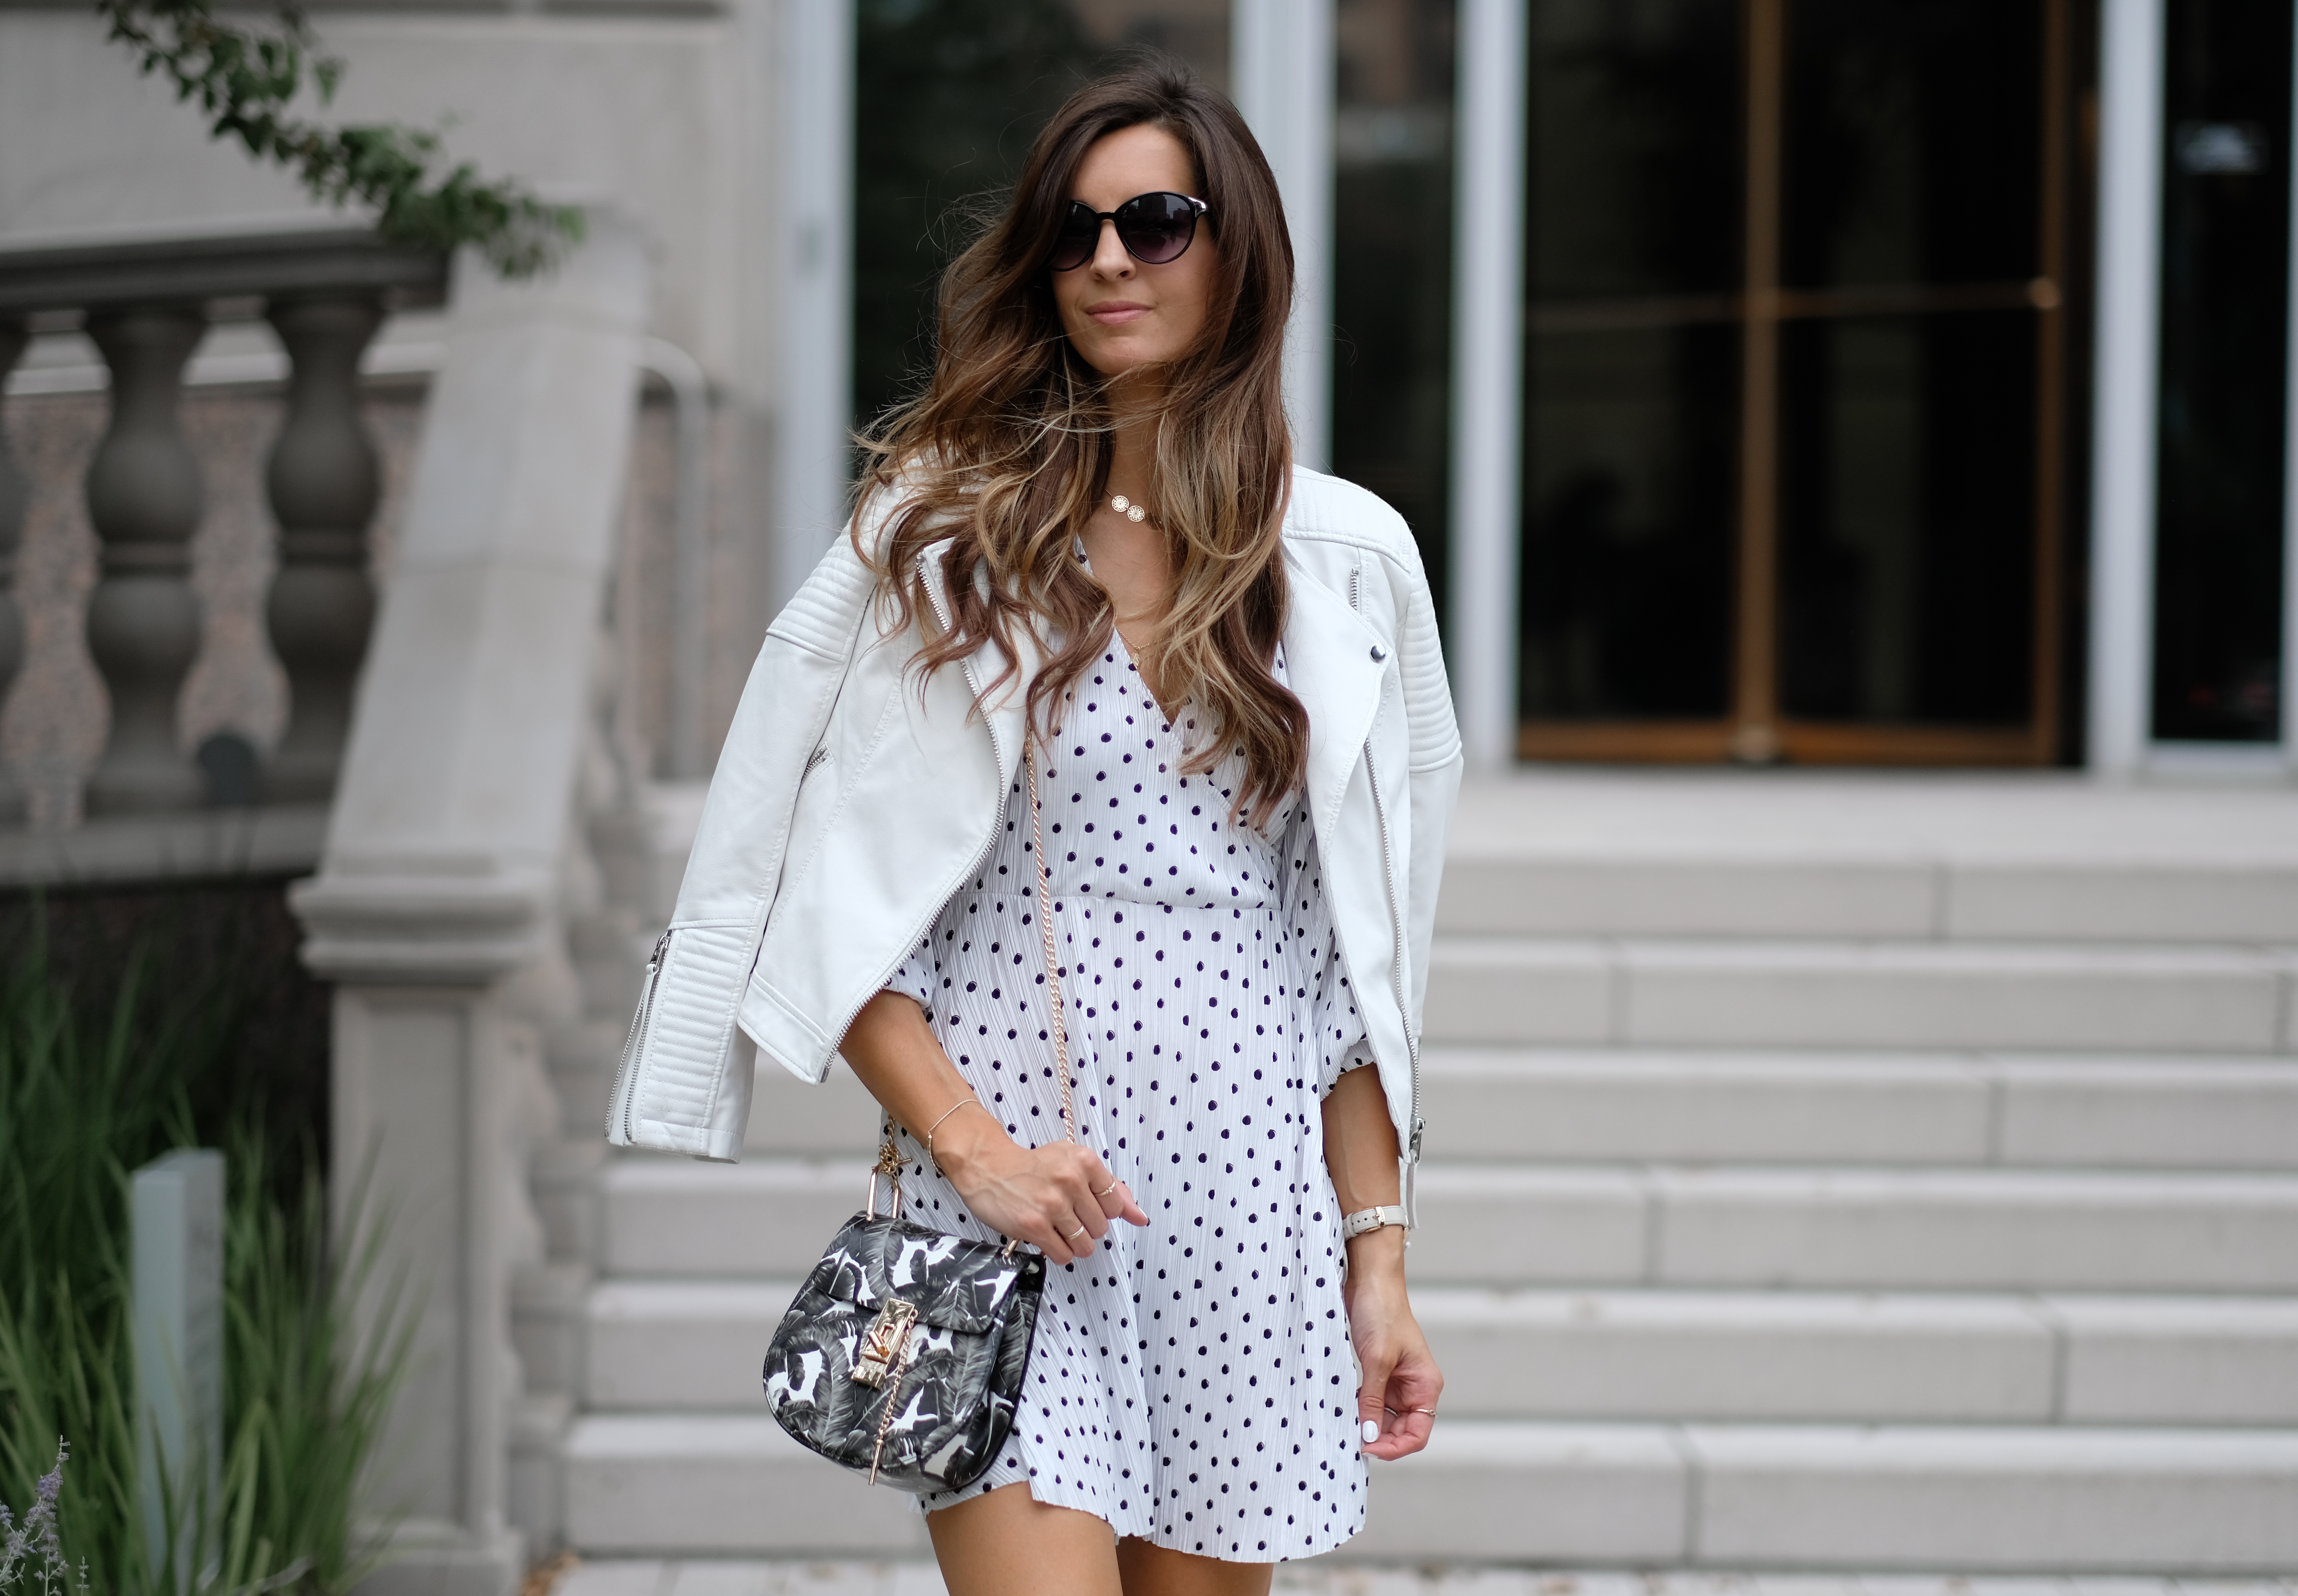 Studded Boots and Polka Dots